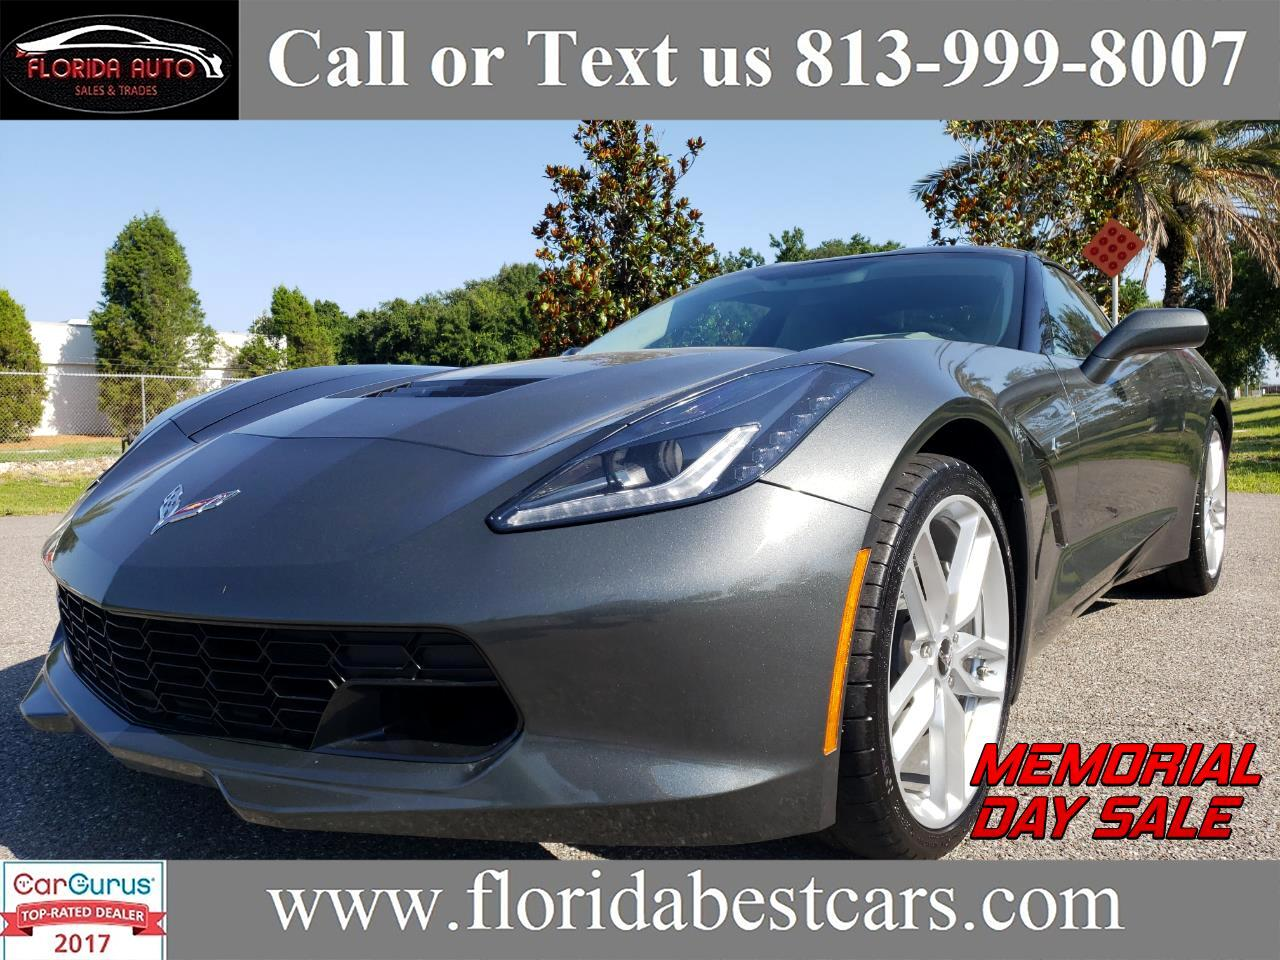 2018 Chevrolet Corvette 3LT Coupe Automatic